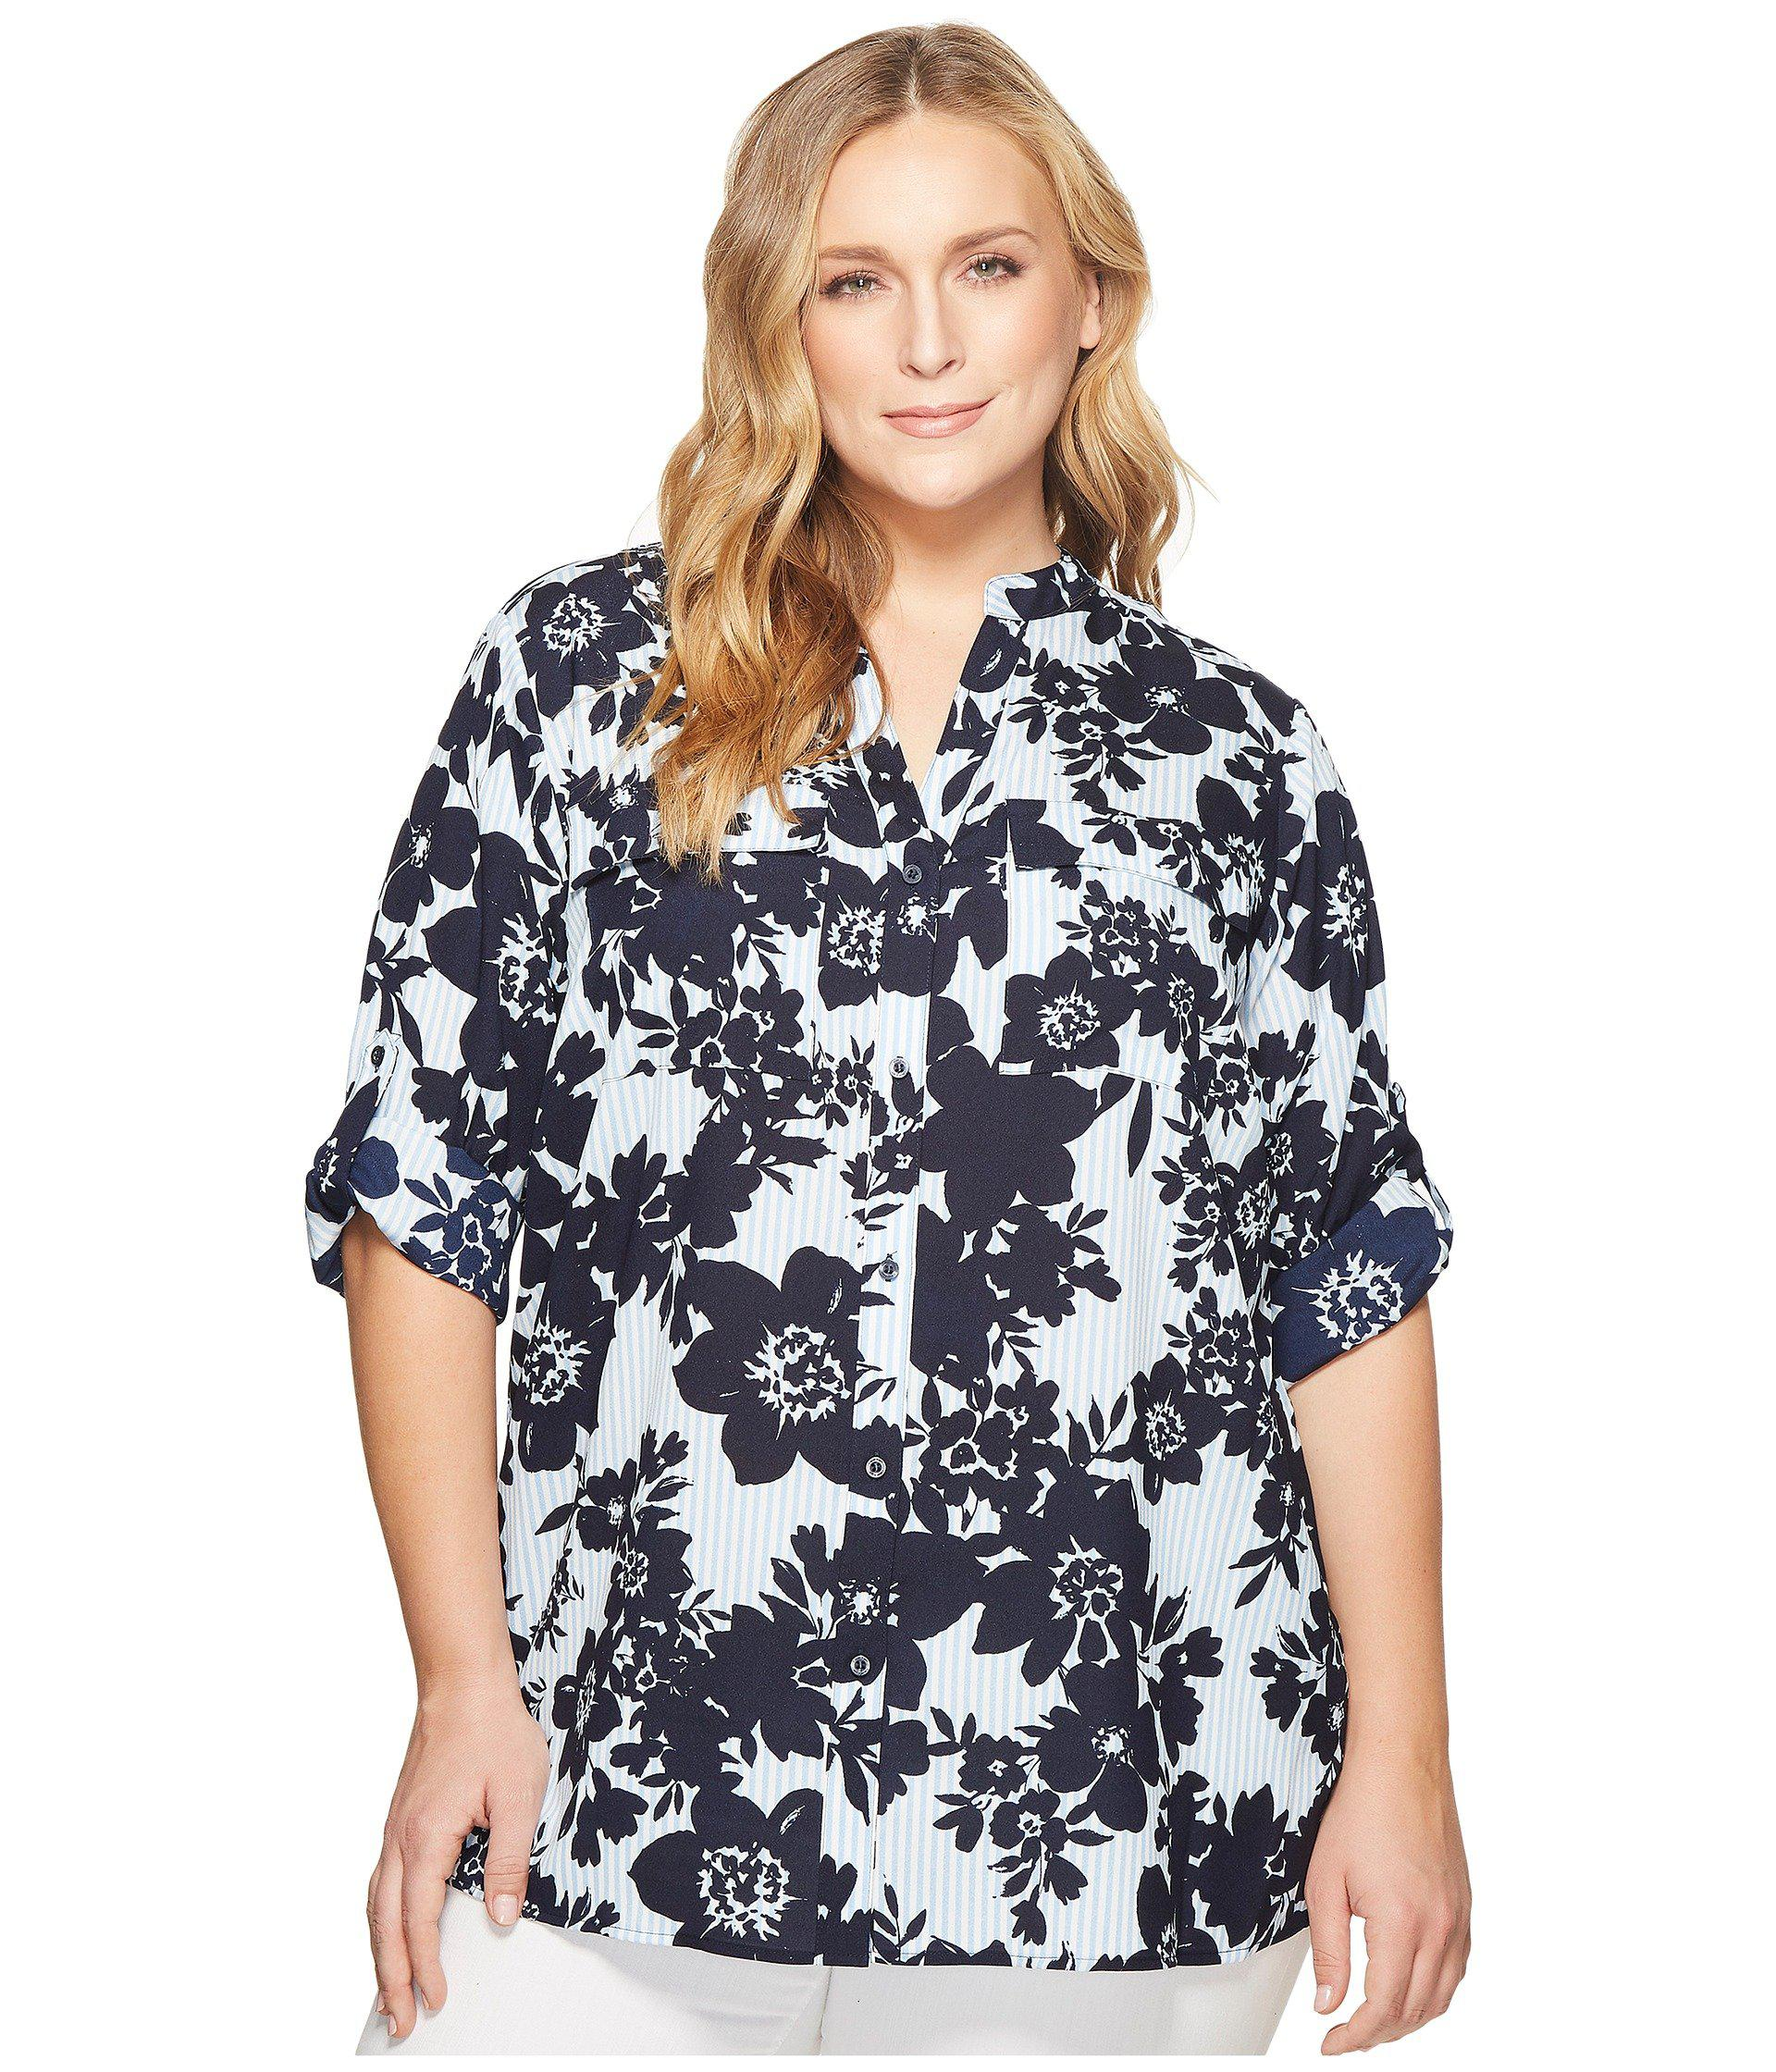 aa30eb924d3 Lyst - Calvin Klein Plus Size Printed Roll Sleeve Blouse in Blue ...